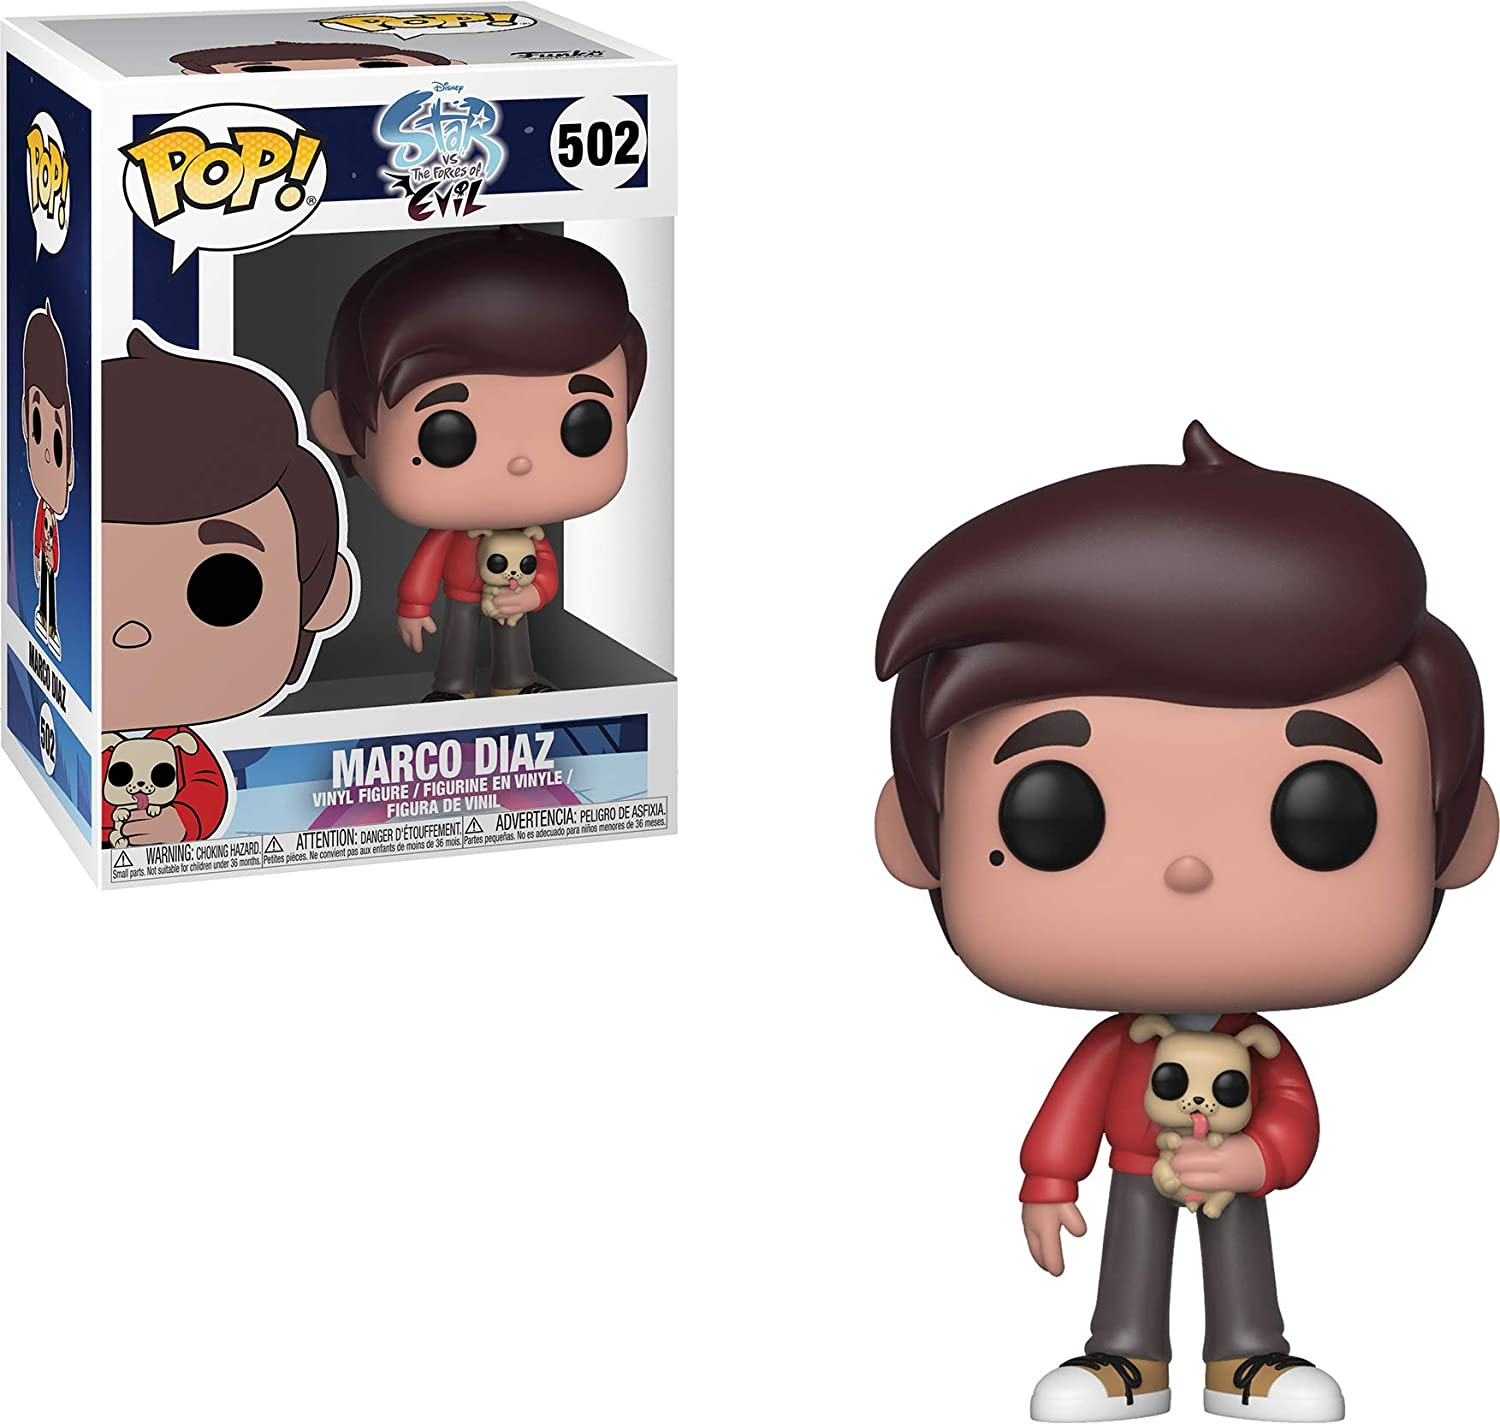 Pop! Star Vs. The Forces of Evil - Figura de Vinilo Marco Diaz